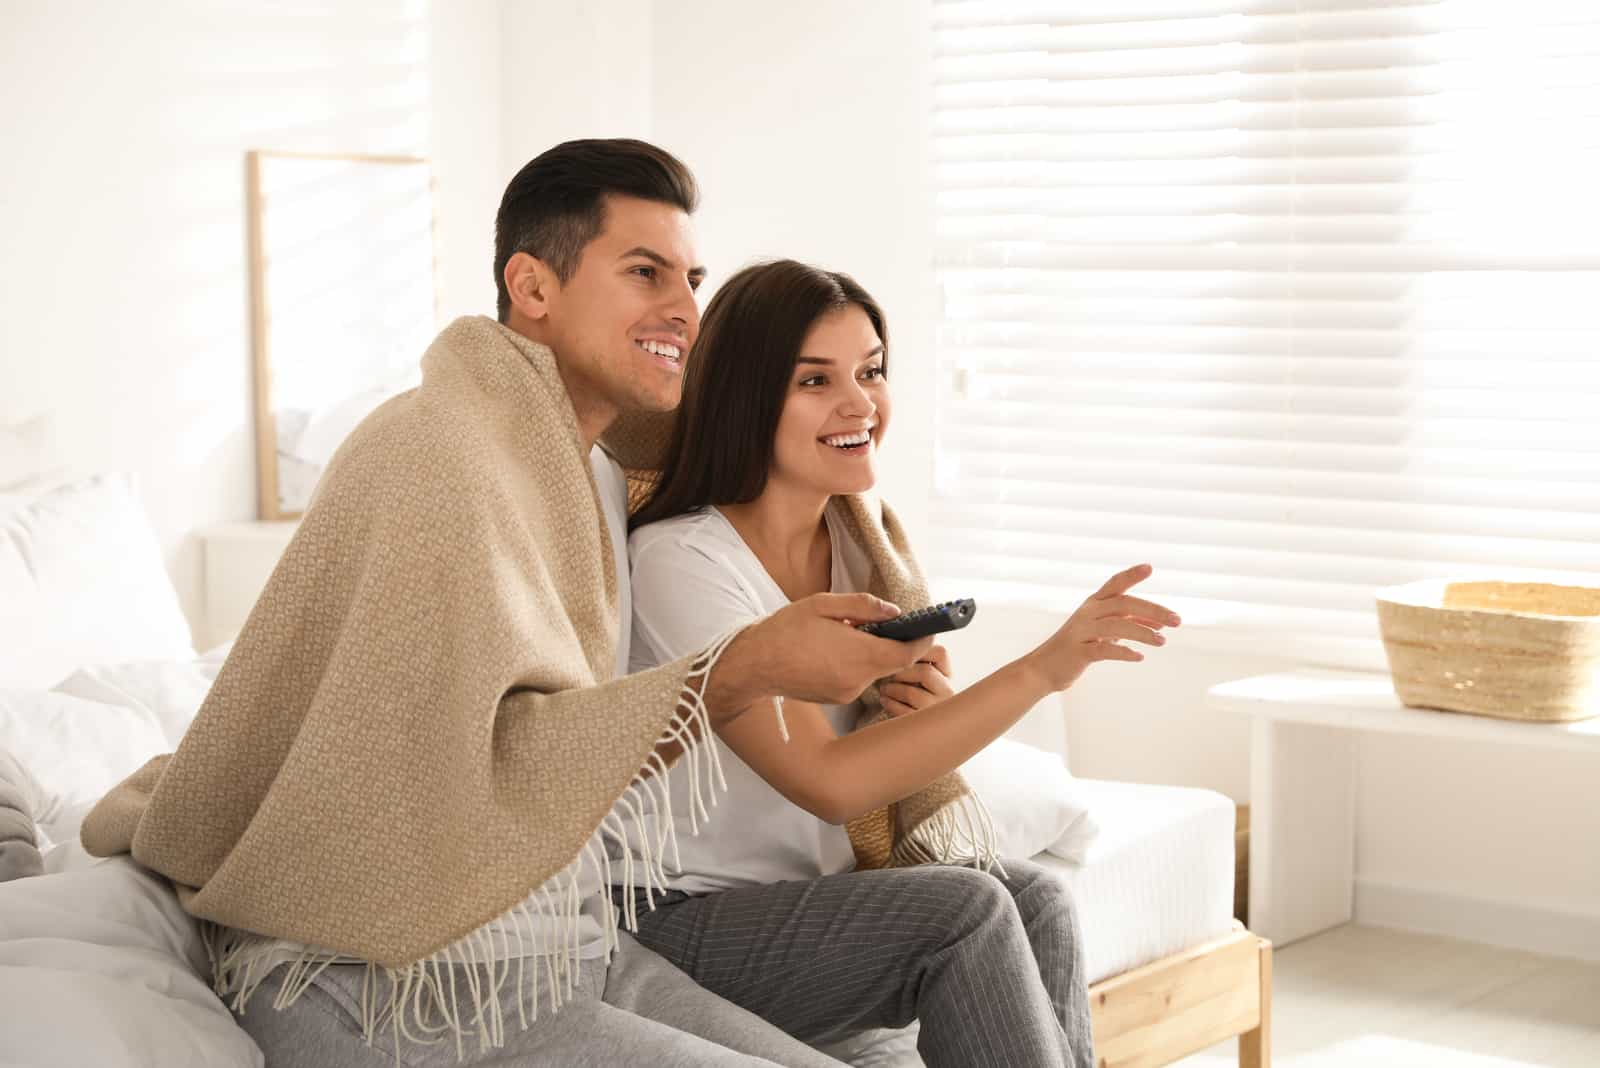 a smiling man and woman sit on the couch and watch tv